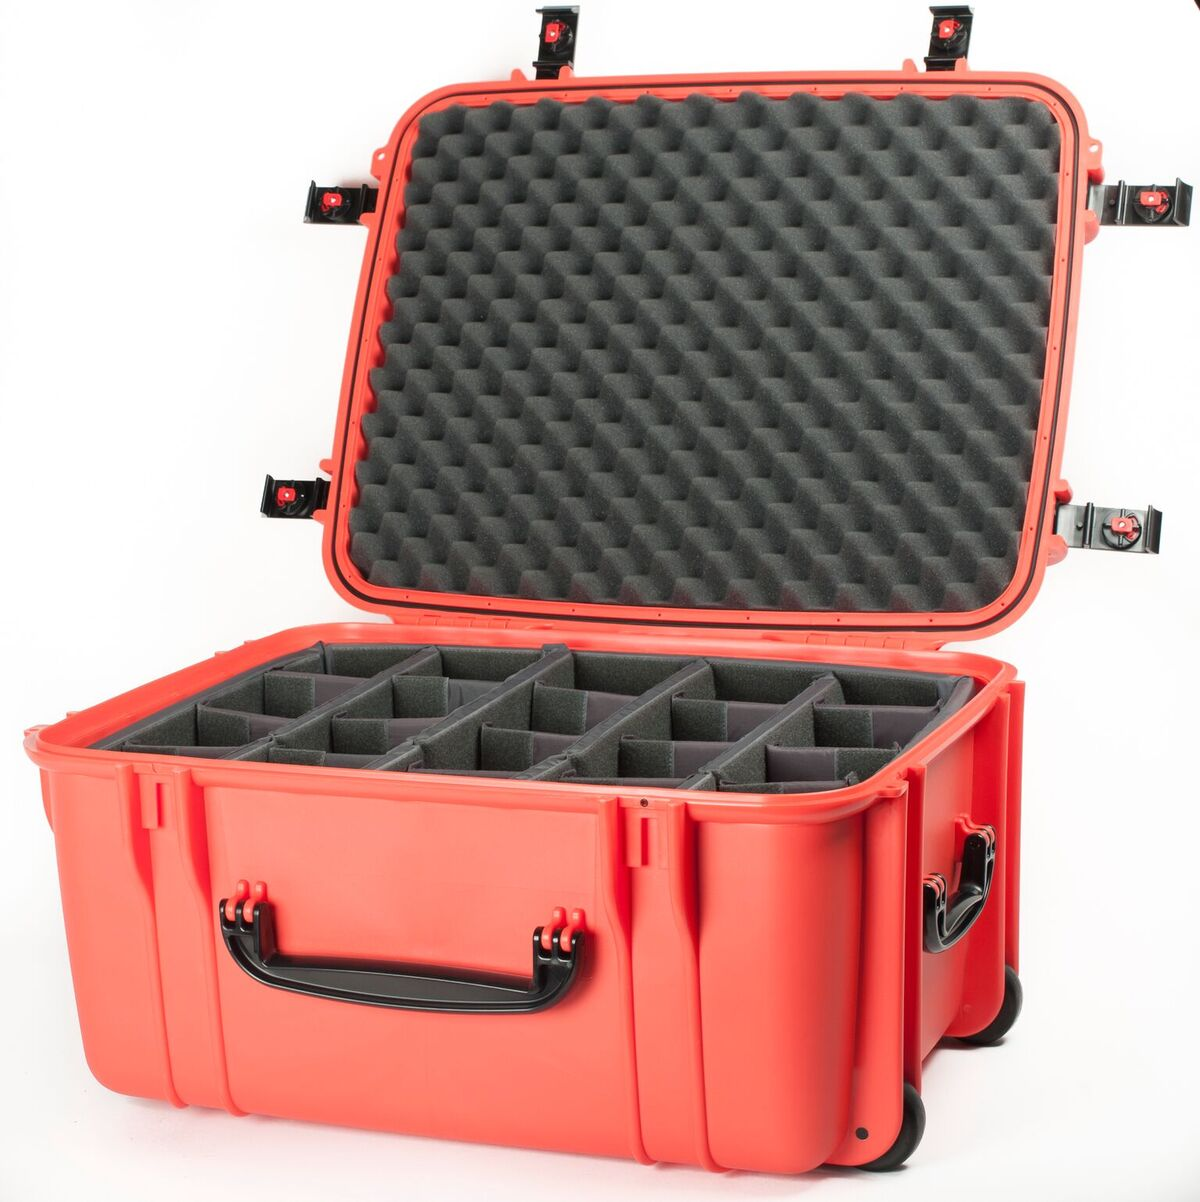 SEAHORSE PROTECTIVE EQUIPMENT CASES      SE1220D,OR